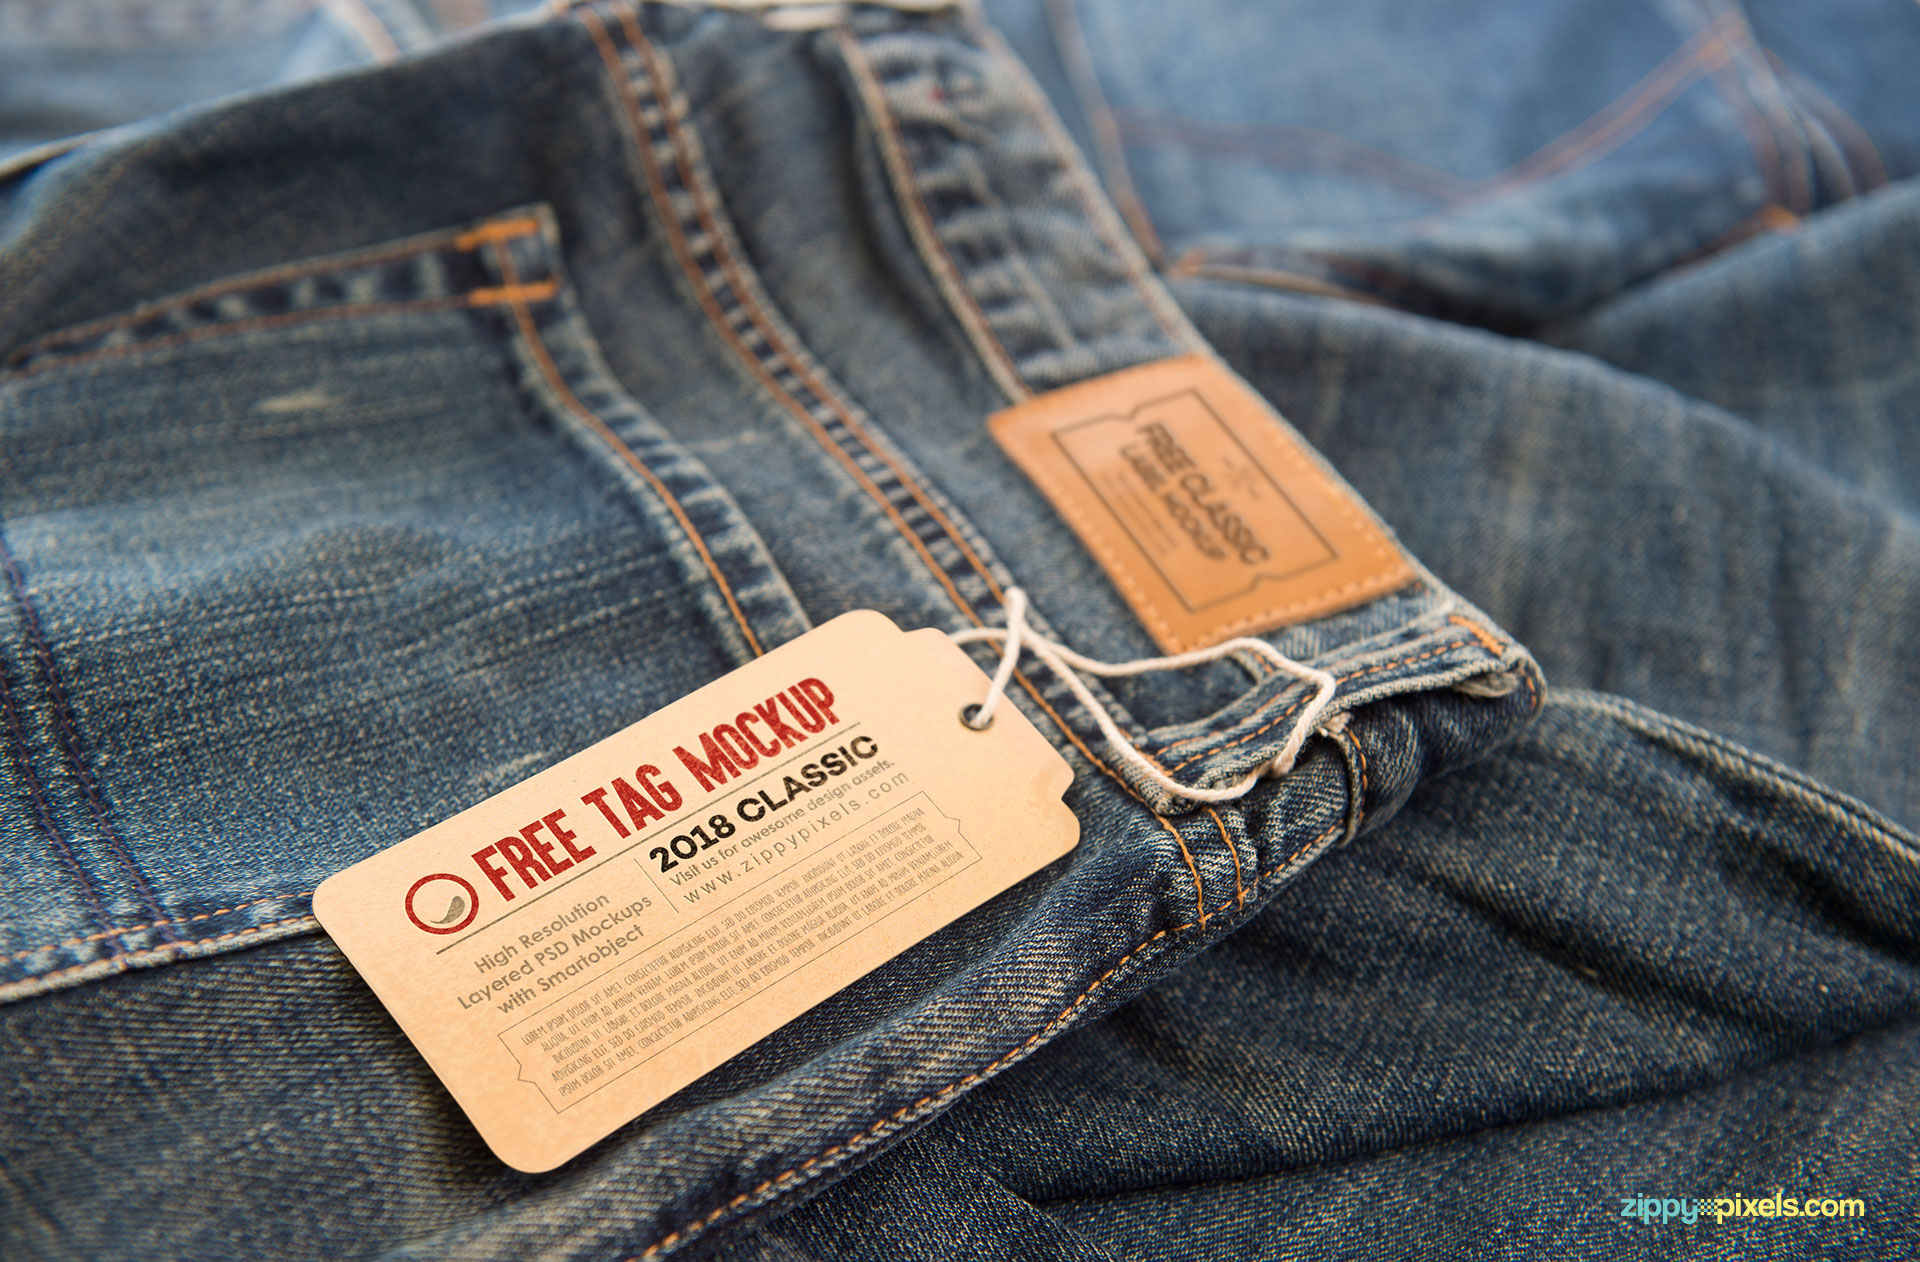 Free label mock ups on jeans.